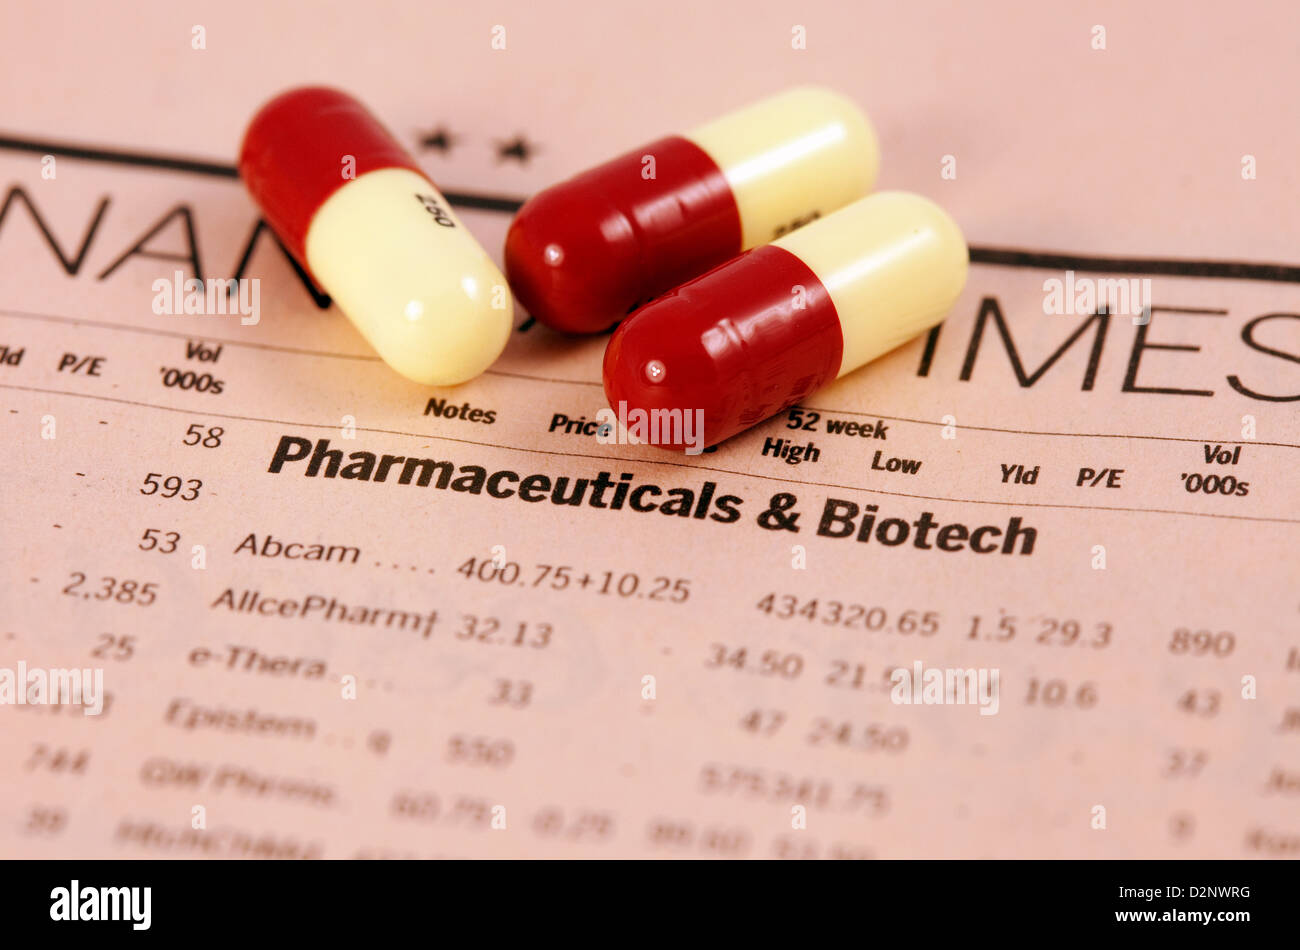 Pharmaceutical company share prices in the Financial Times newspaper, and drugs - concept, FT UK - Stock Image